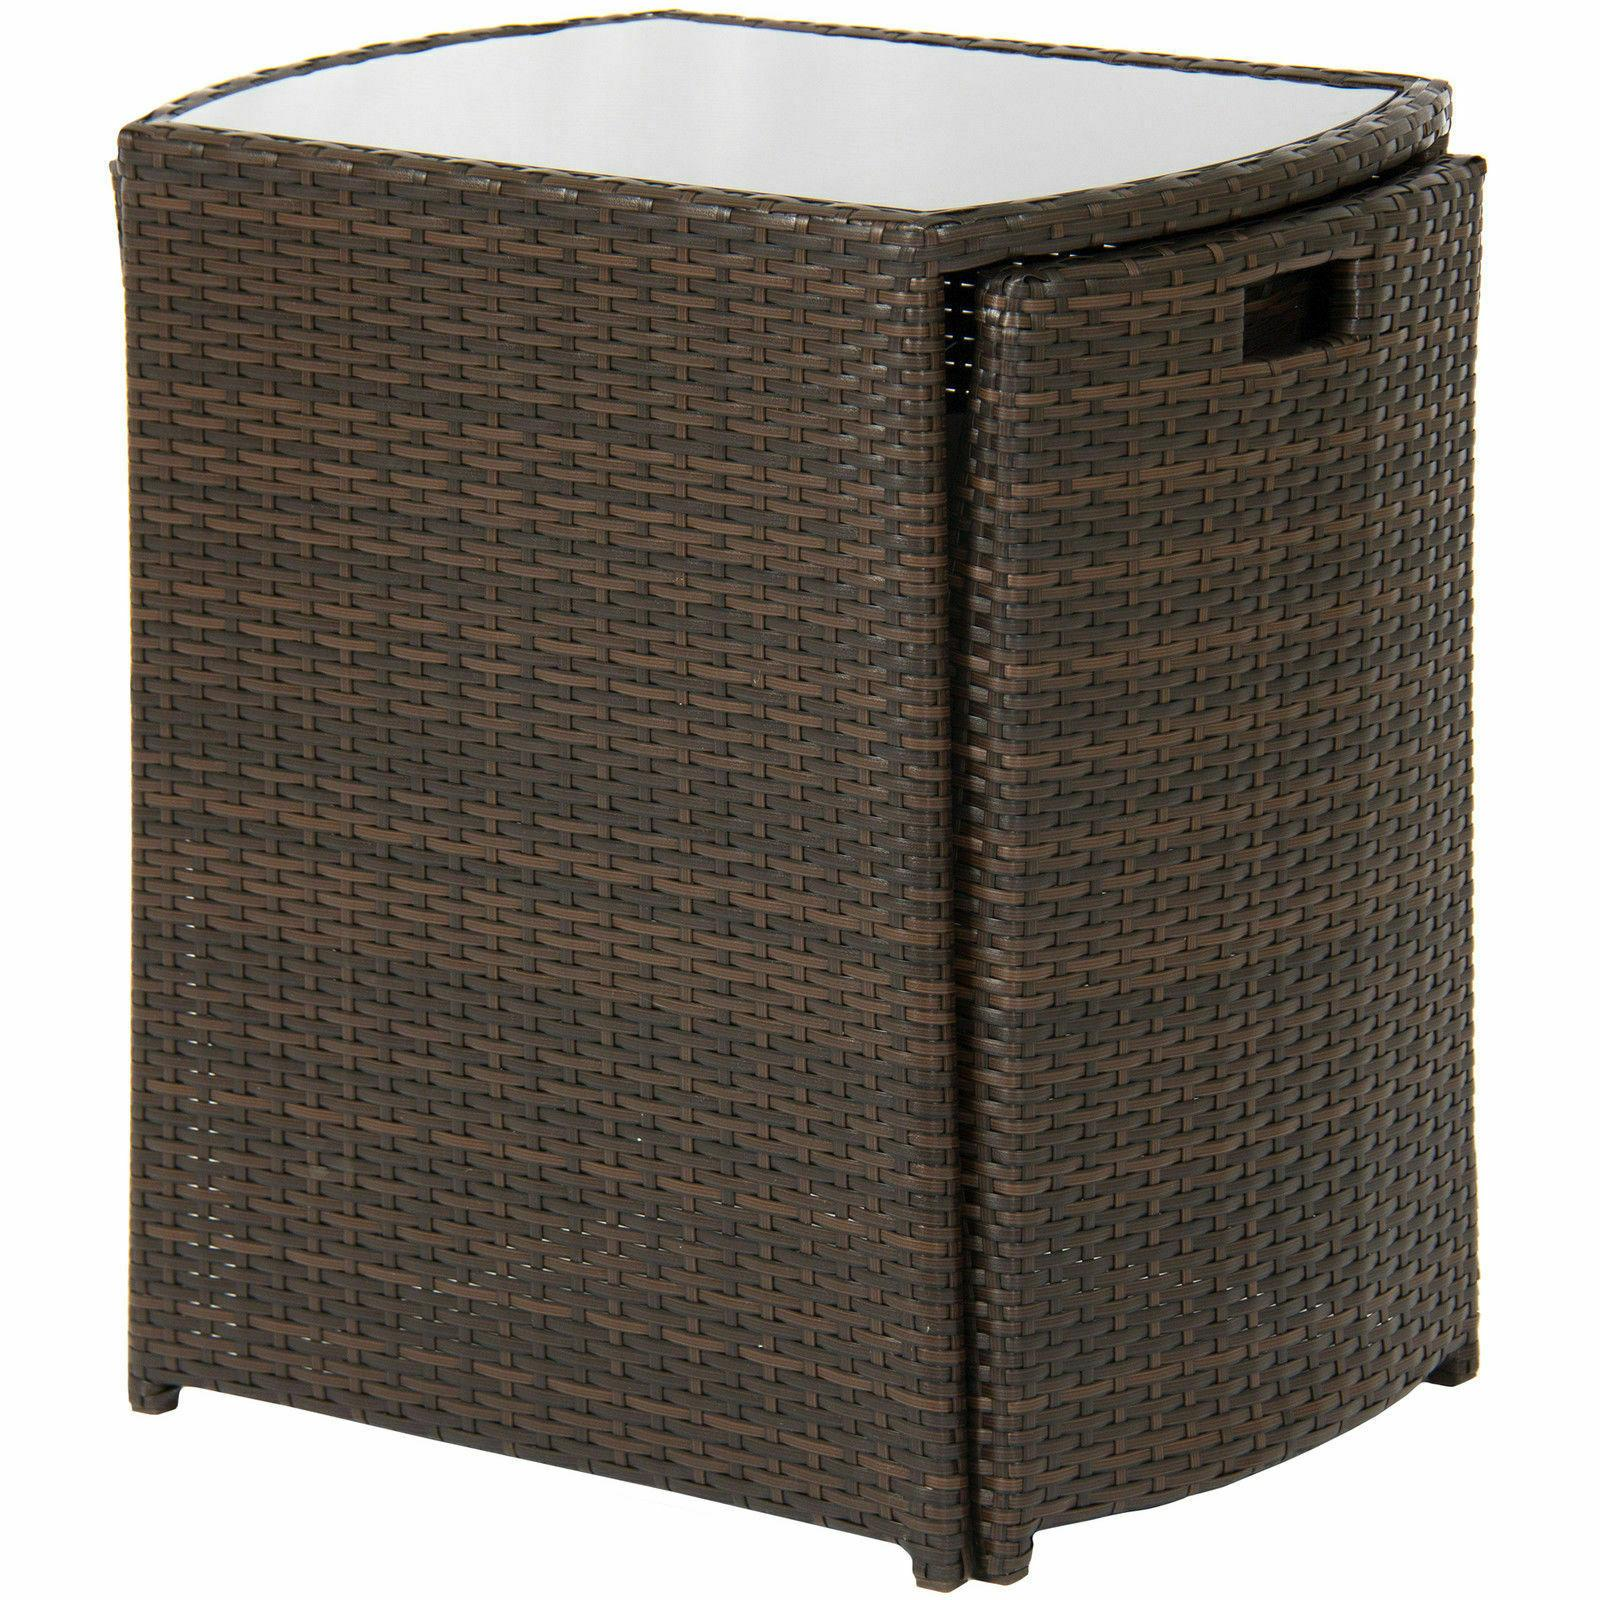 Outdoor Patio Furniture Wicker 3pc Top Table, 2 Brown